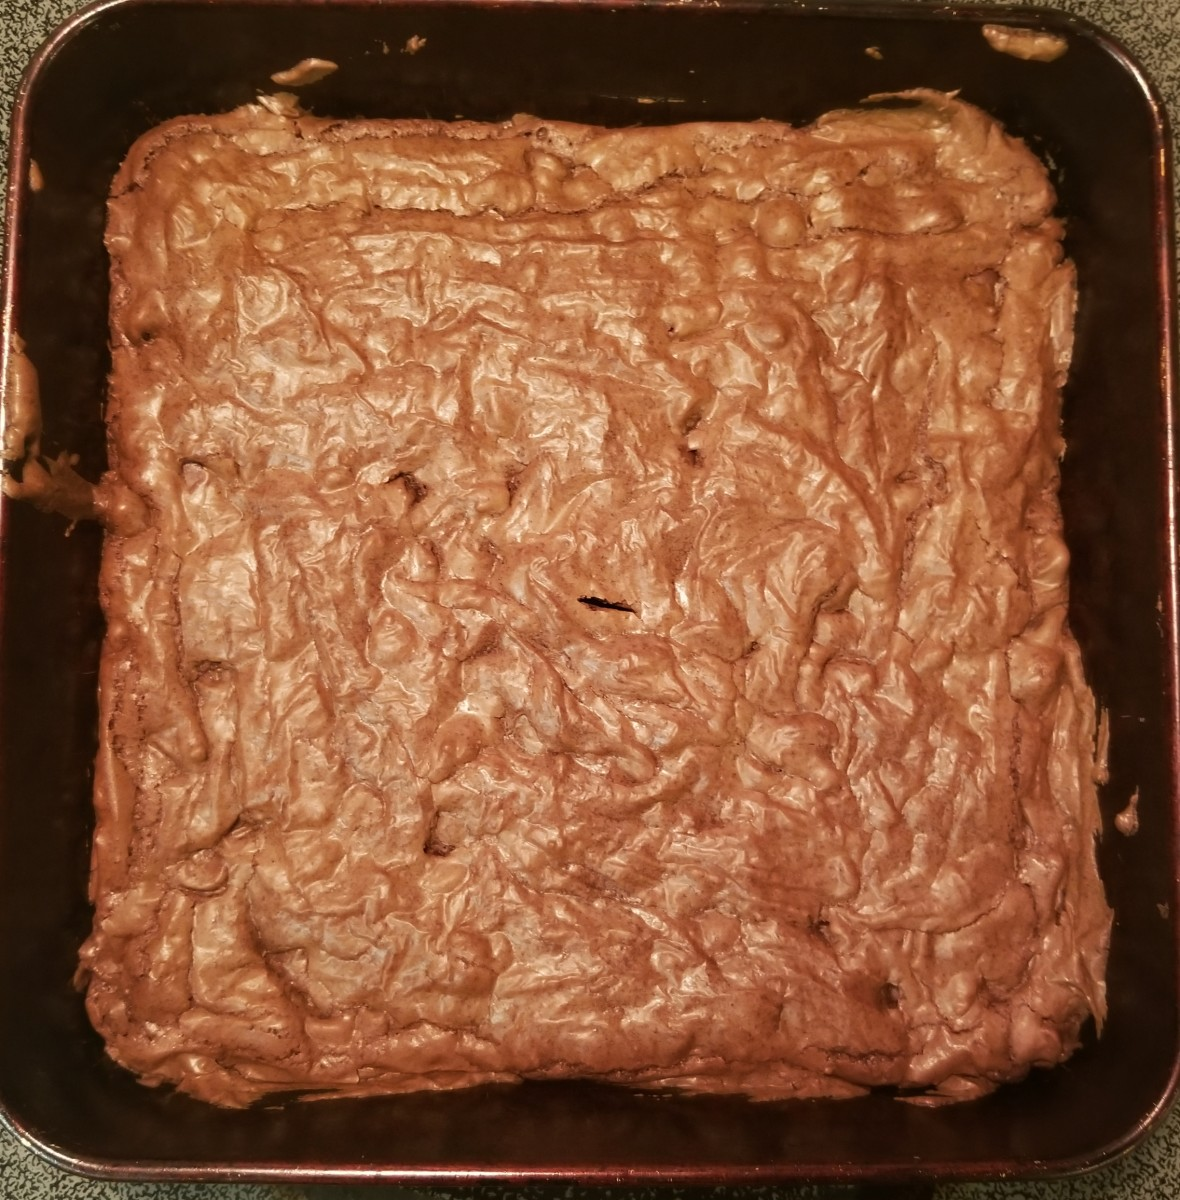 Step 1: Bake brownies thoroughly. Allow them to cool.